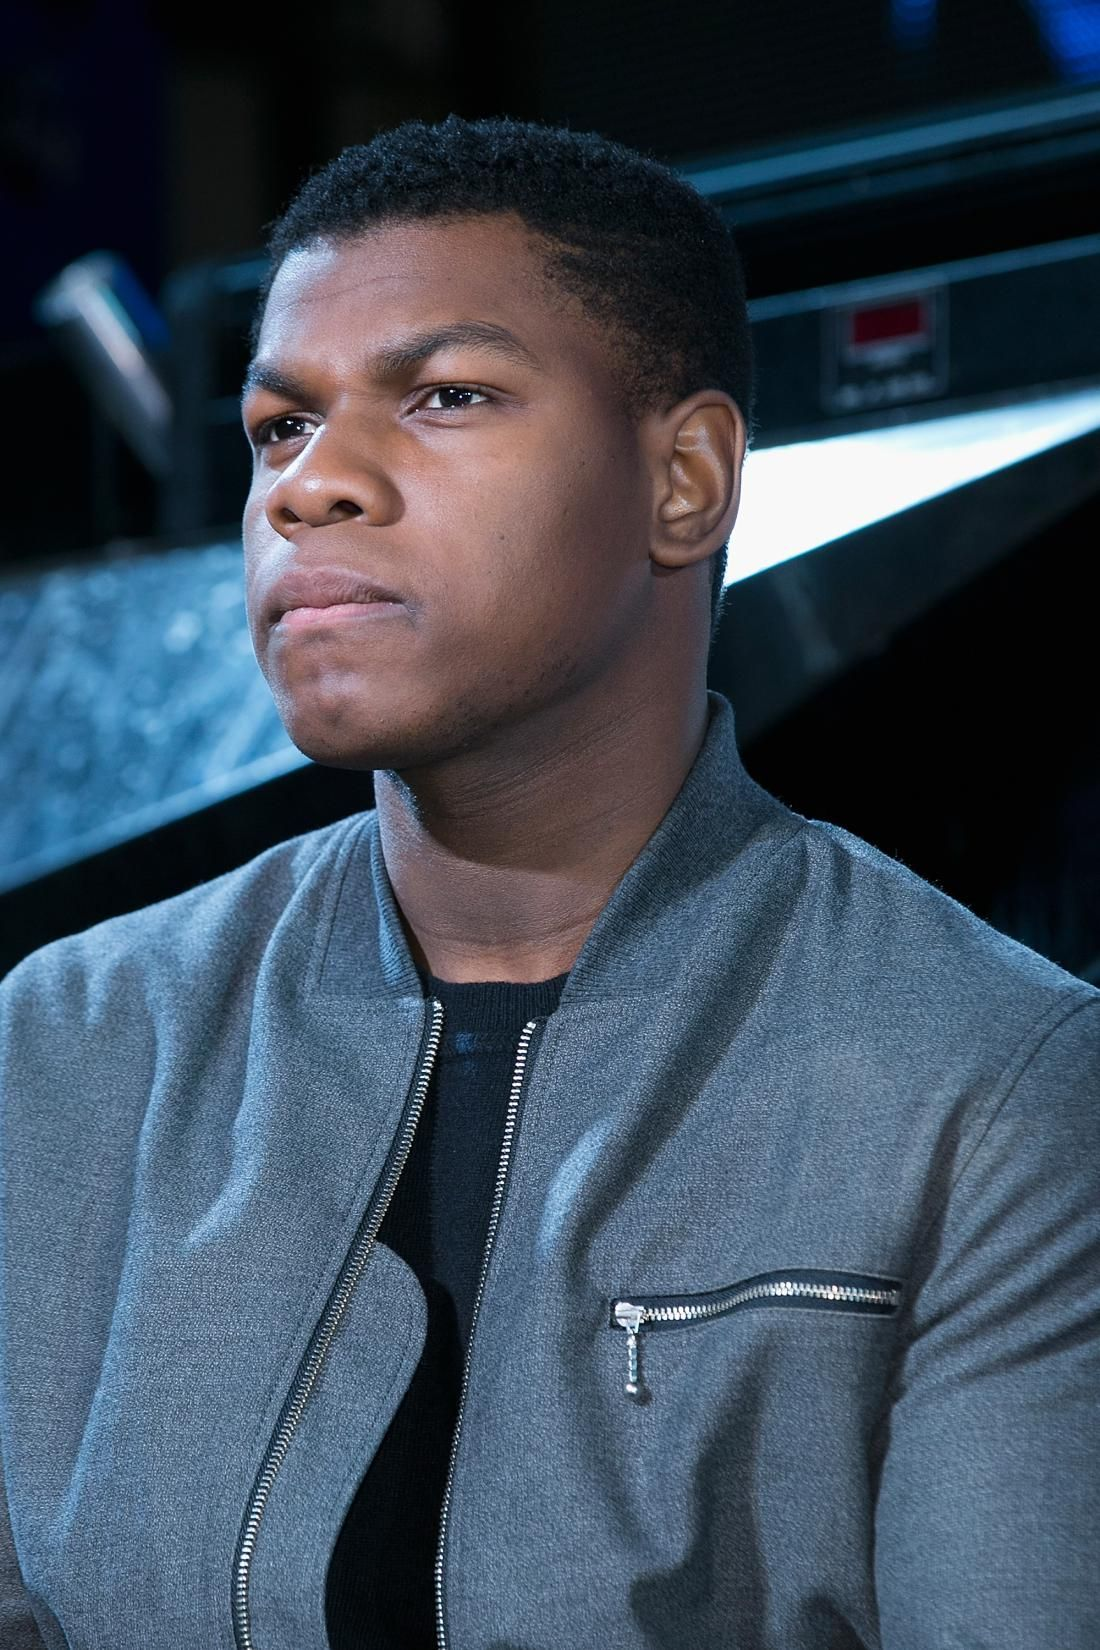 john boyega mercedesjohn boyega twitter, john boyega tumblr, john boyega and daisy ridley, john boyega star wars, john boyega pacific rim, john boyega who dated who, john boyega finn star wars, john boyega impression of daisy ridley, john boyega weight loss, john boyega english accent, john boyega tv tropes, john boyega tv show, john boyega mercedes, john boyega source, john boyega insta, john boyega autograph, john boyega fansite, john boyega interview, john boyega american accent, john boyega movies